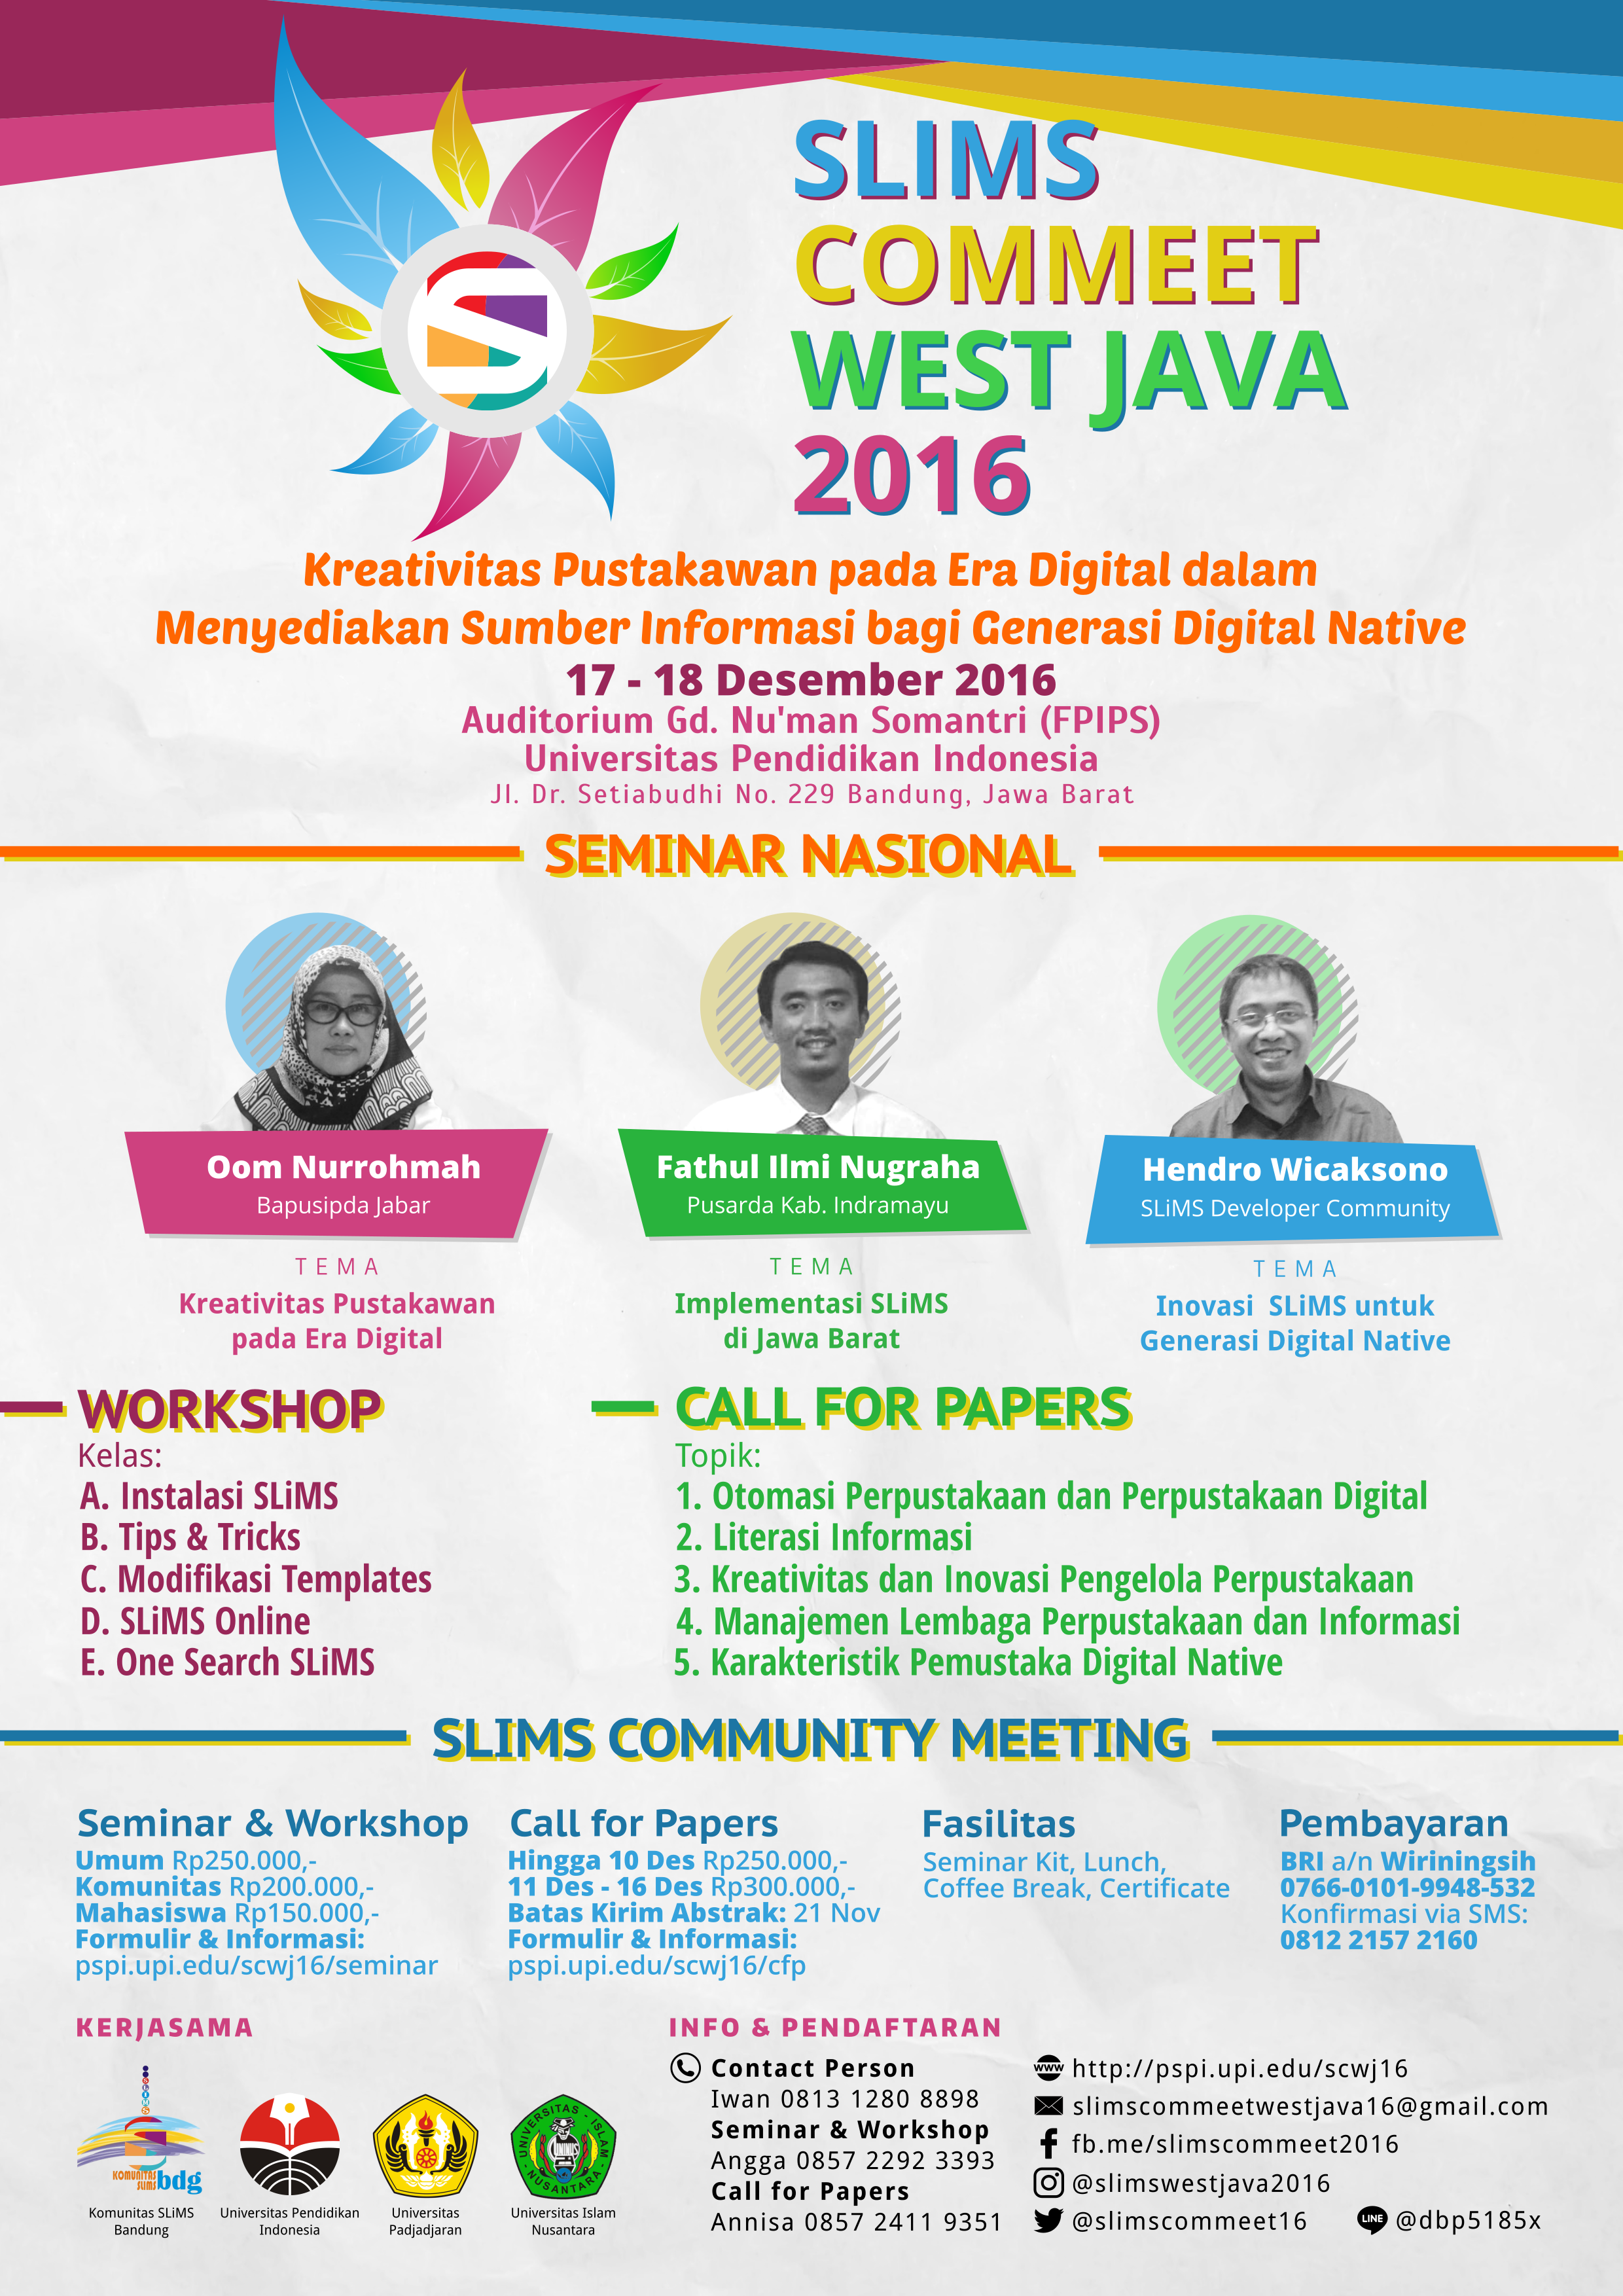 poster-seminar-_-workshop-slims-commeet-west-java-2016-v10